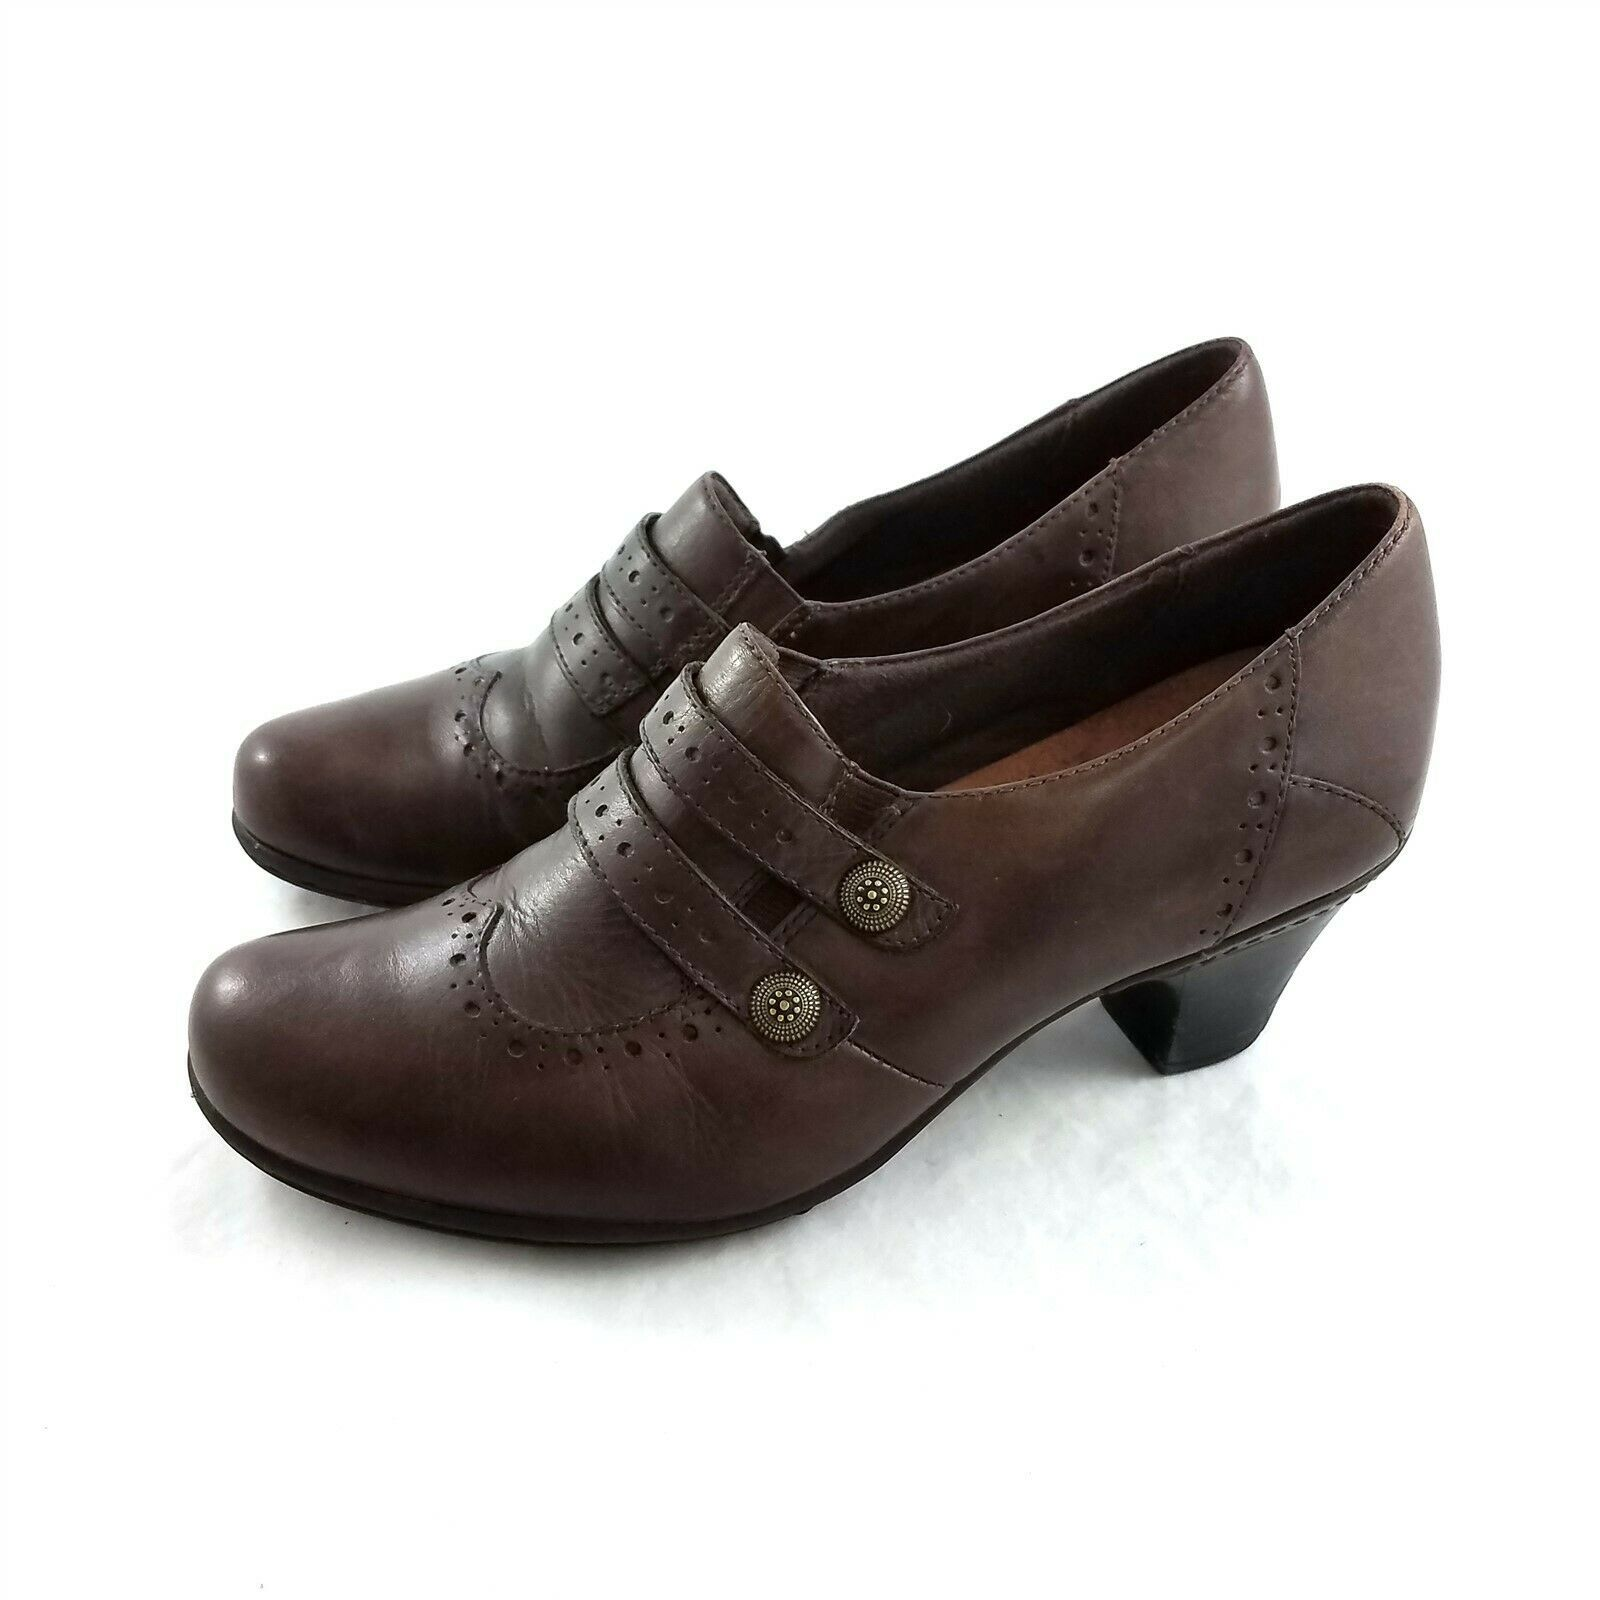 Primary image for Cobb Hill by New Balance Brown Leather Slip On Heels Pumps Shoes Womens 9.5 N